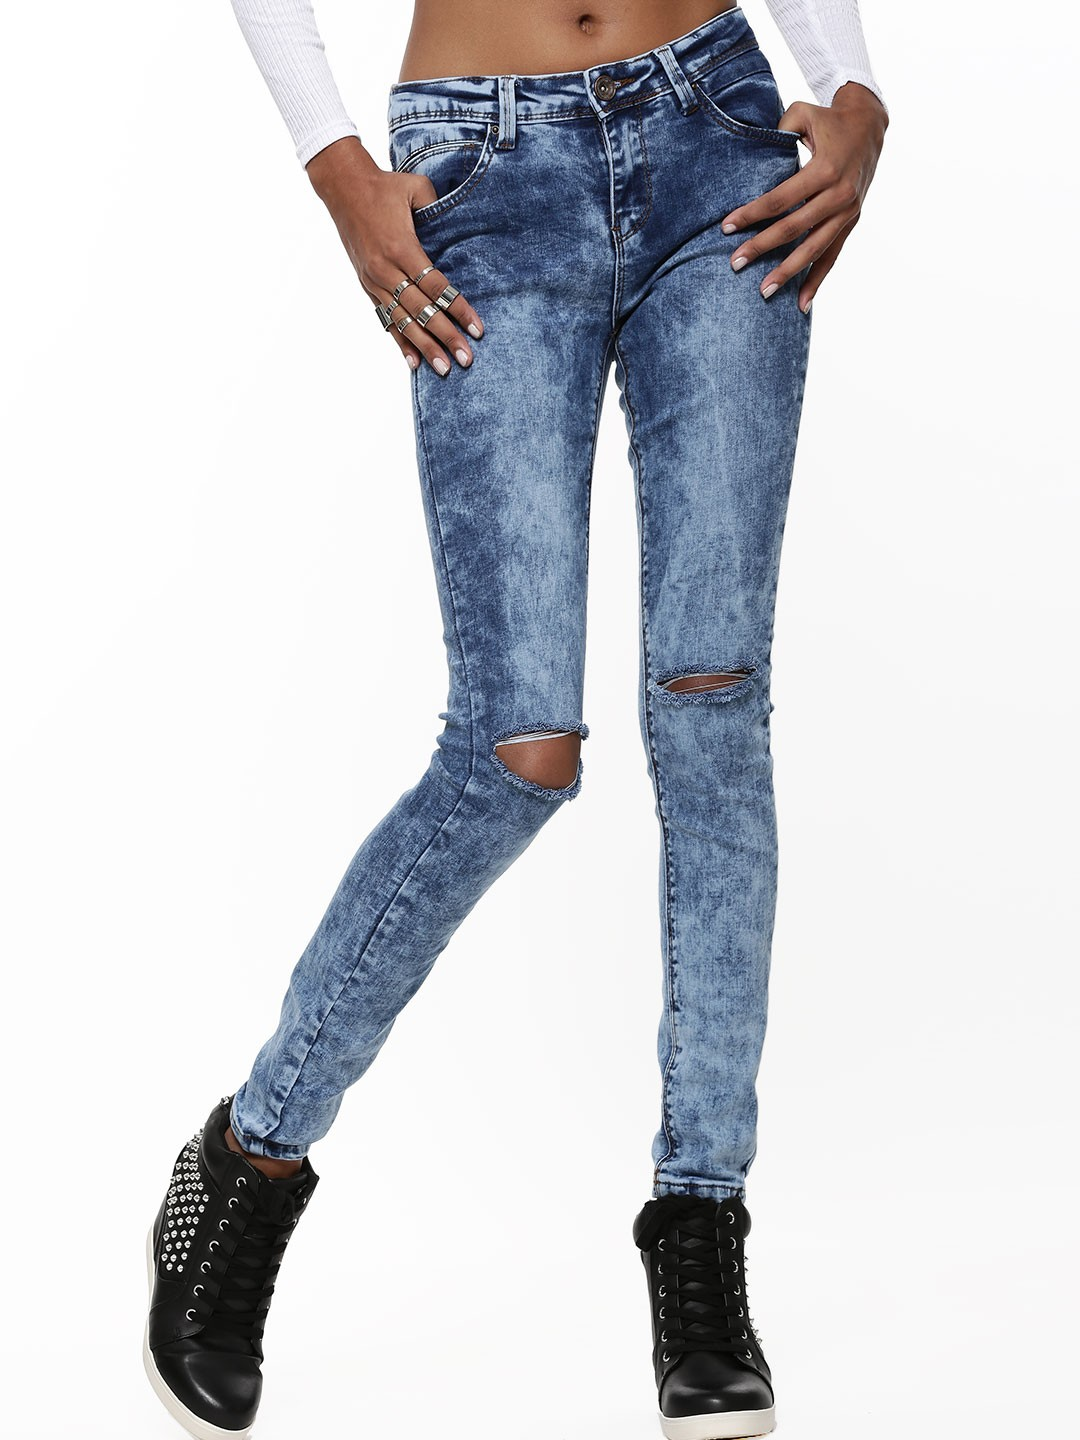 buy new look skinny rip knee stone wash jean for women women 39 s blue ripped jeans online in india. Black Bedroom Furniture Sets. Home Design Ideas